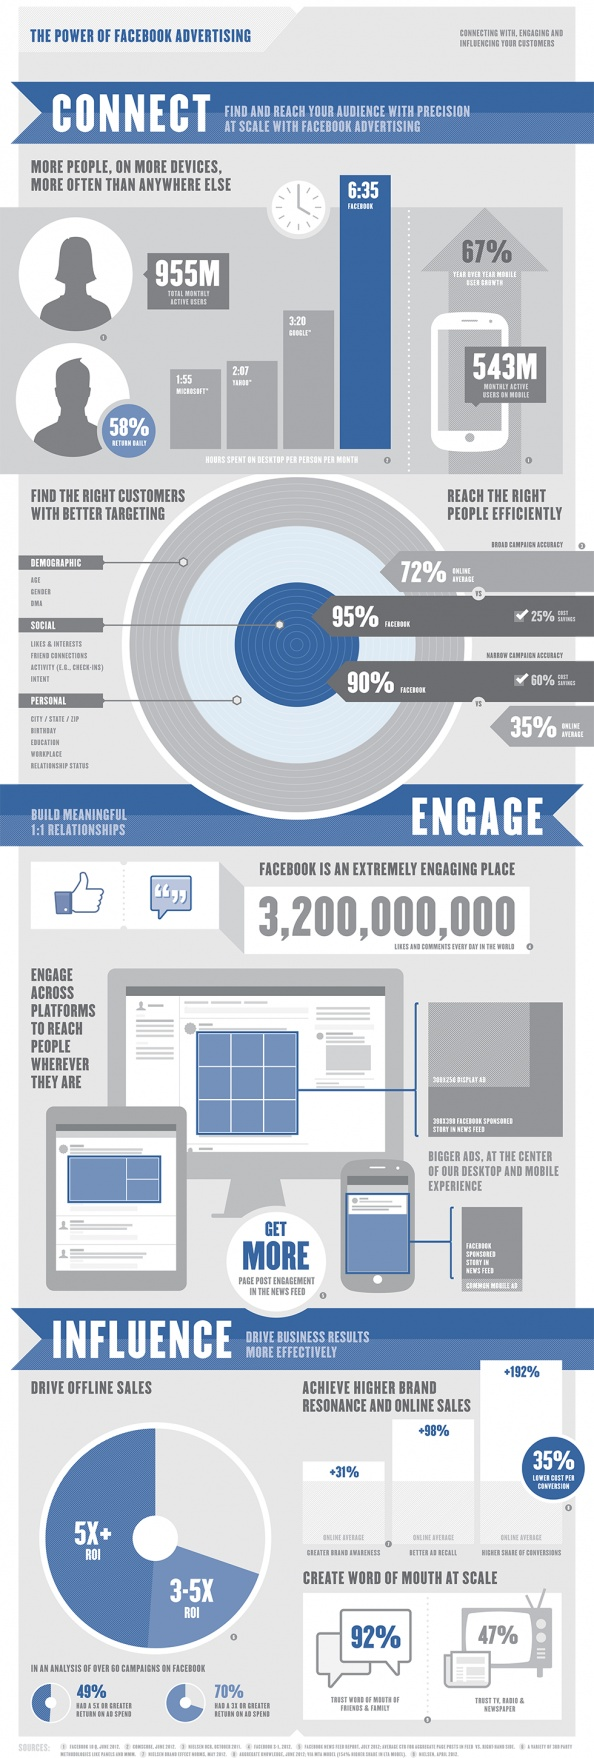 """""""The Power of Facebook Advertising."""" Facebook is now using Infographics to promote advertising on the largest social network in the world. With a low stock price, and no bottom in site, the pressure is on for Facebook to promote the benefits of its advertising product.#advertising #facebook"""